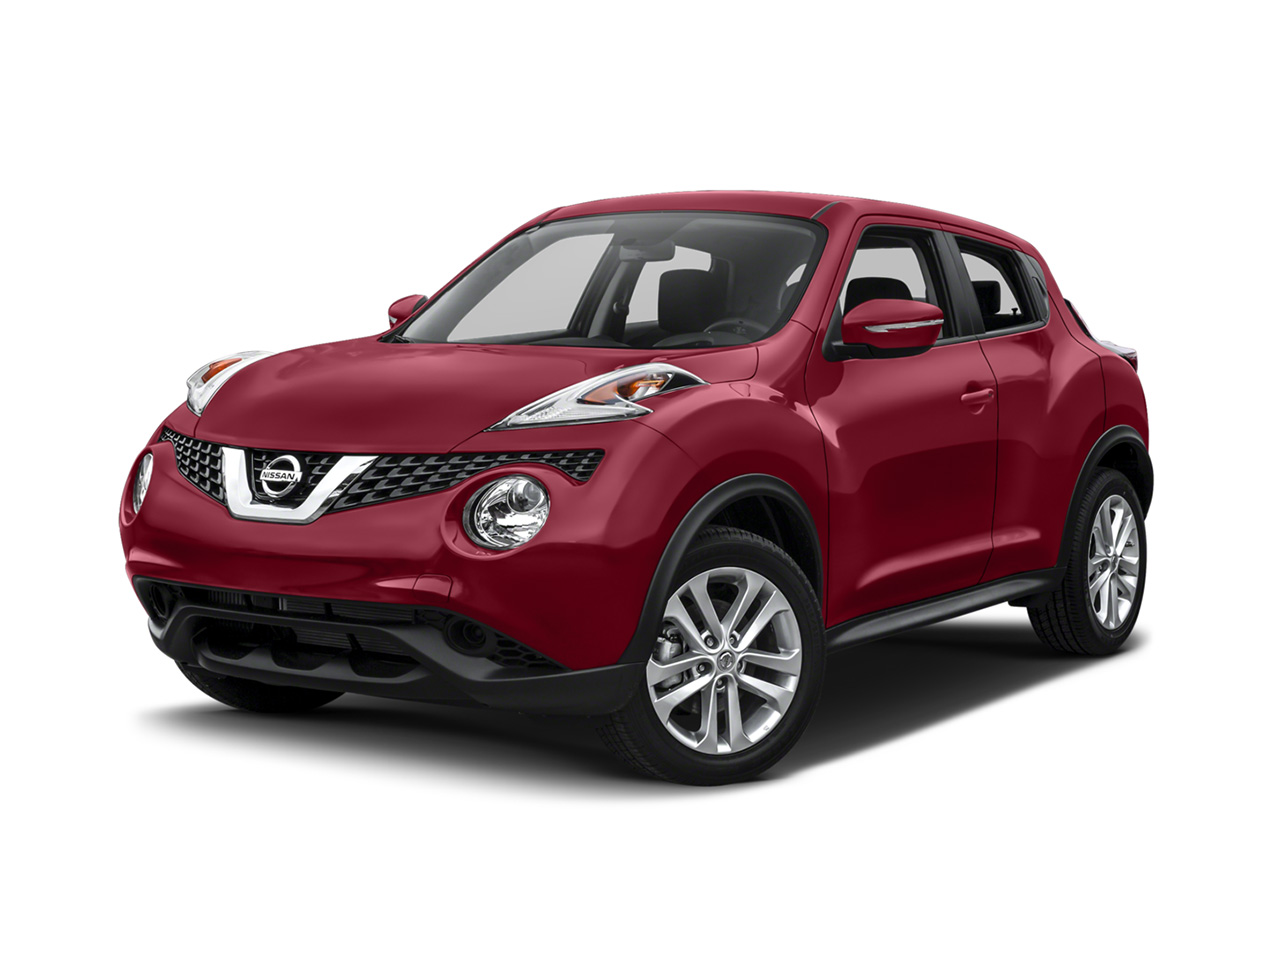 2017 Nissan Juke Prices in Qatar Gulf Specs  Reviews for Doha